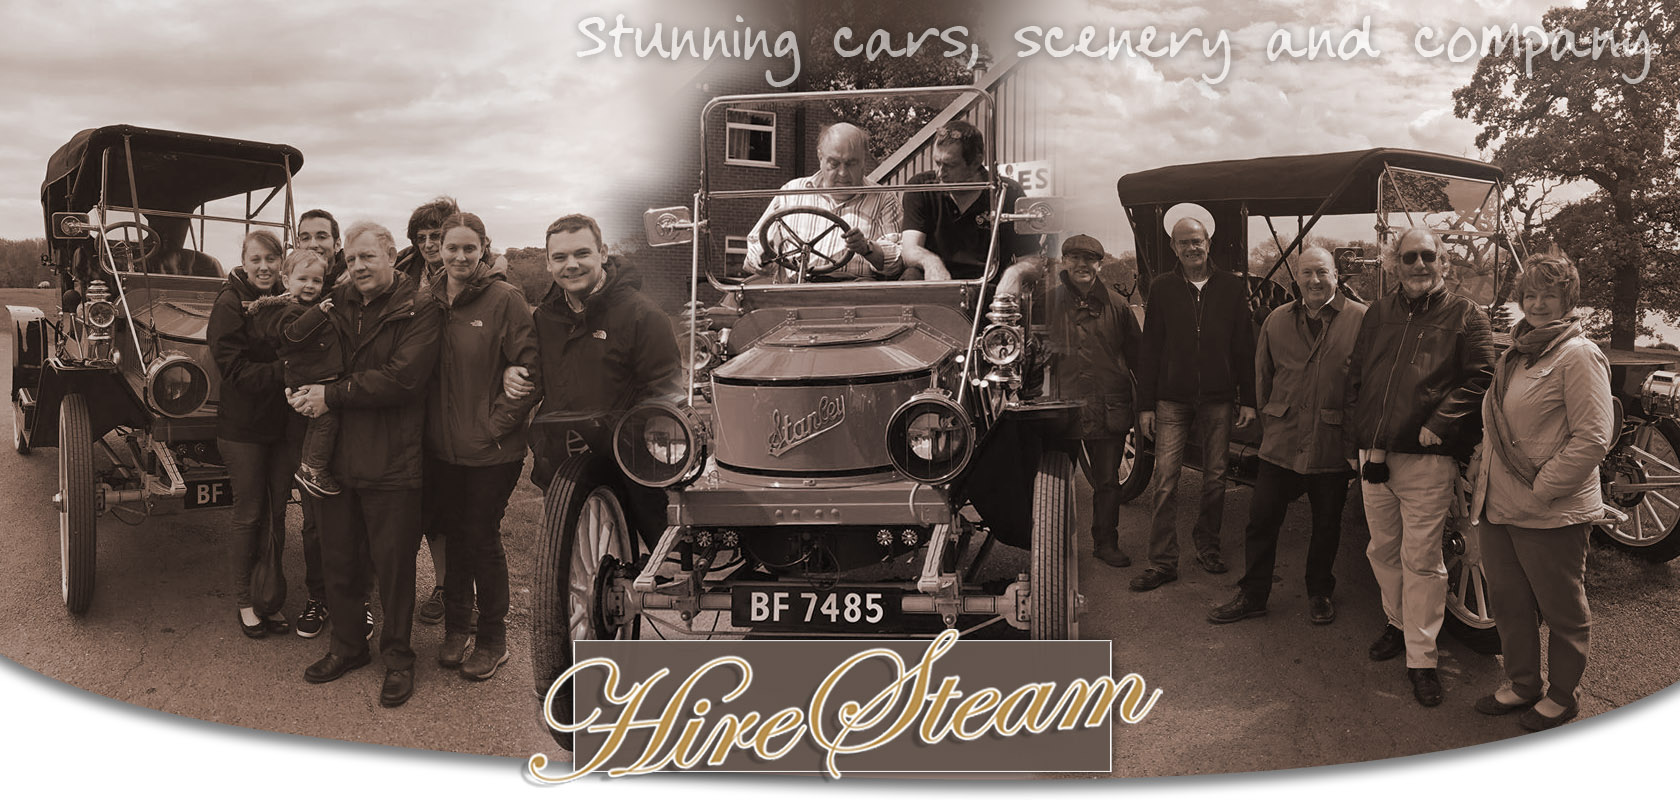 Steam Car Driving Experience